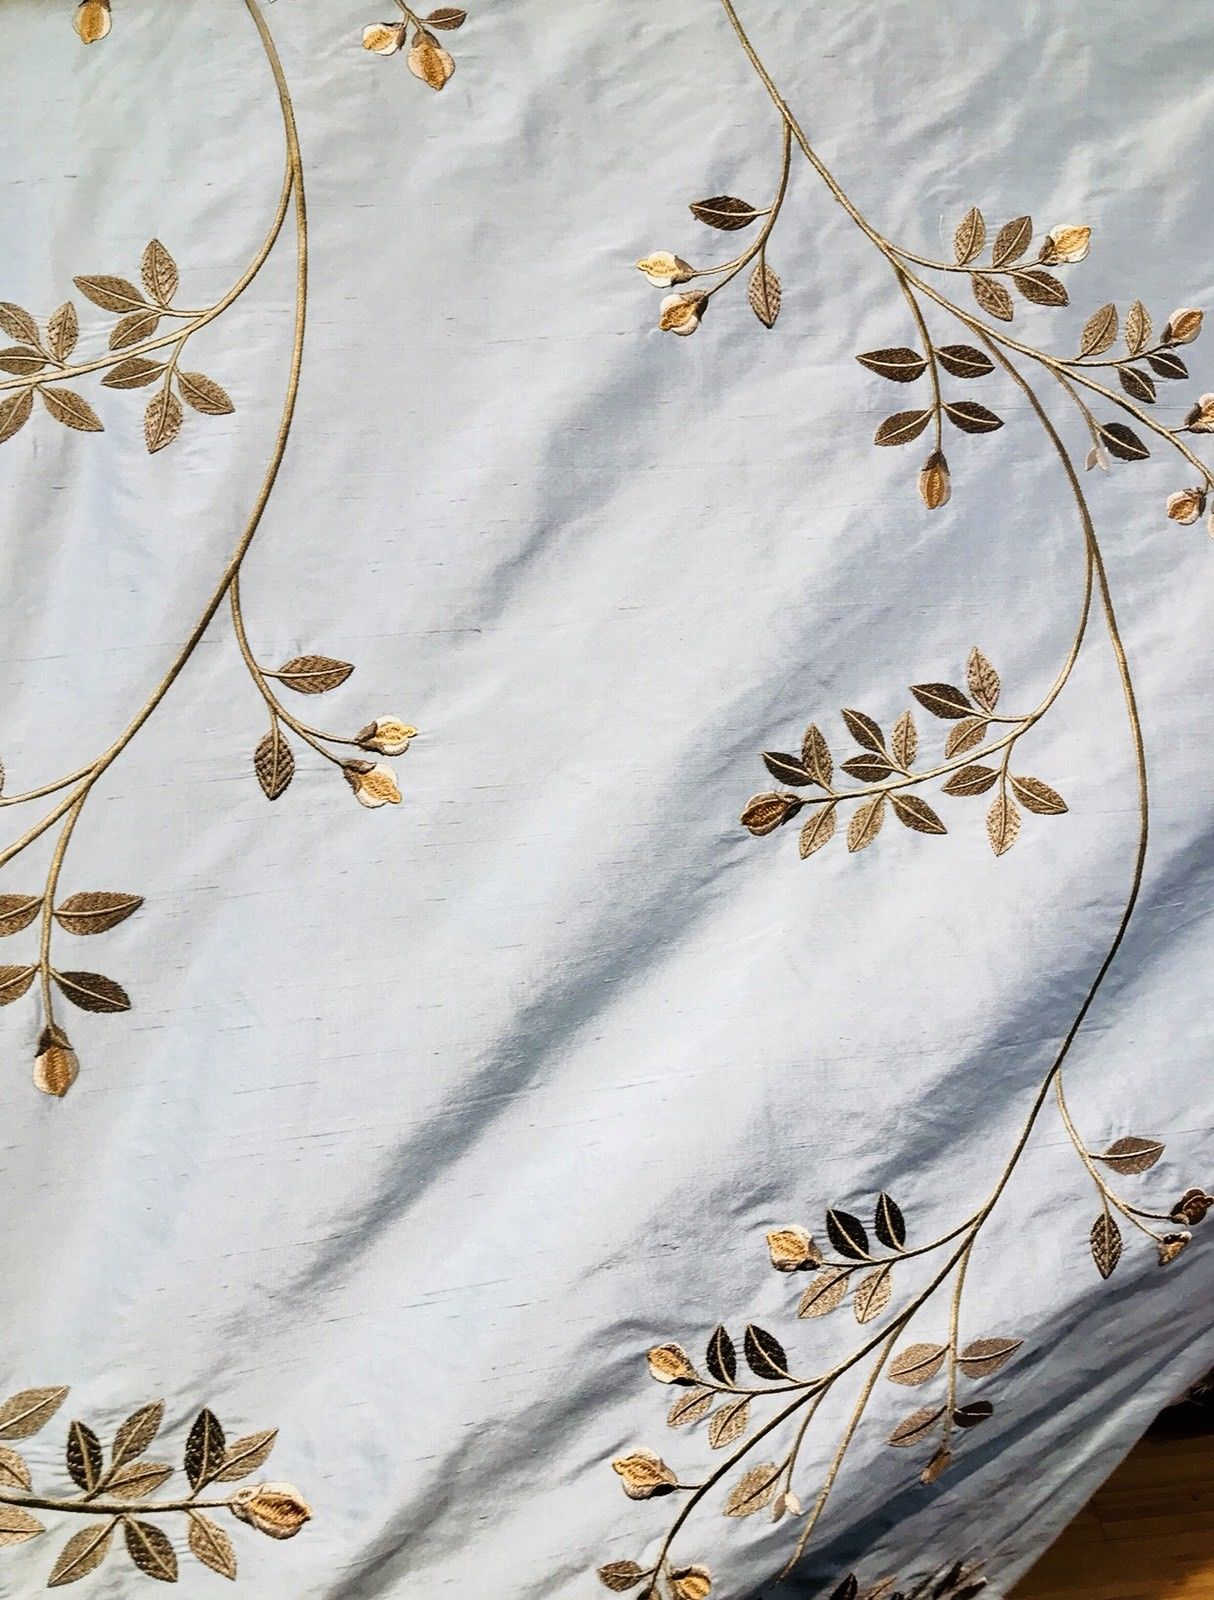 SWATCH Designer 100% Silk Taffeta Embroidered Fabric - Eggshell Blue Gold Floral - Fancy Styles Fabric Boutique